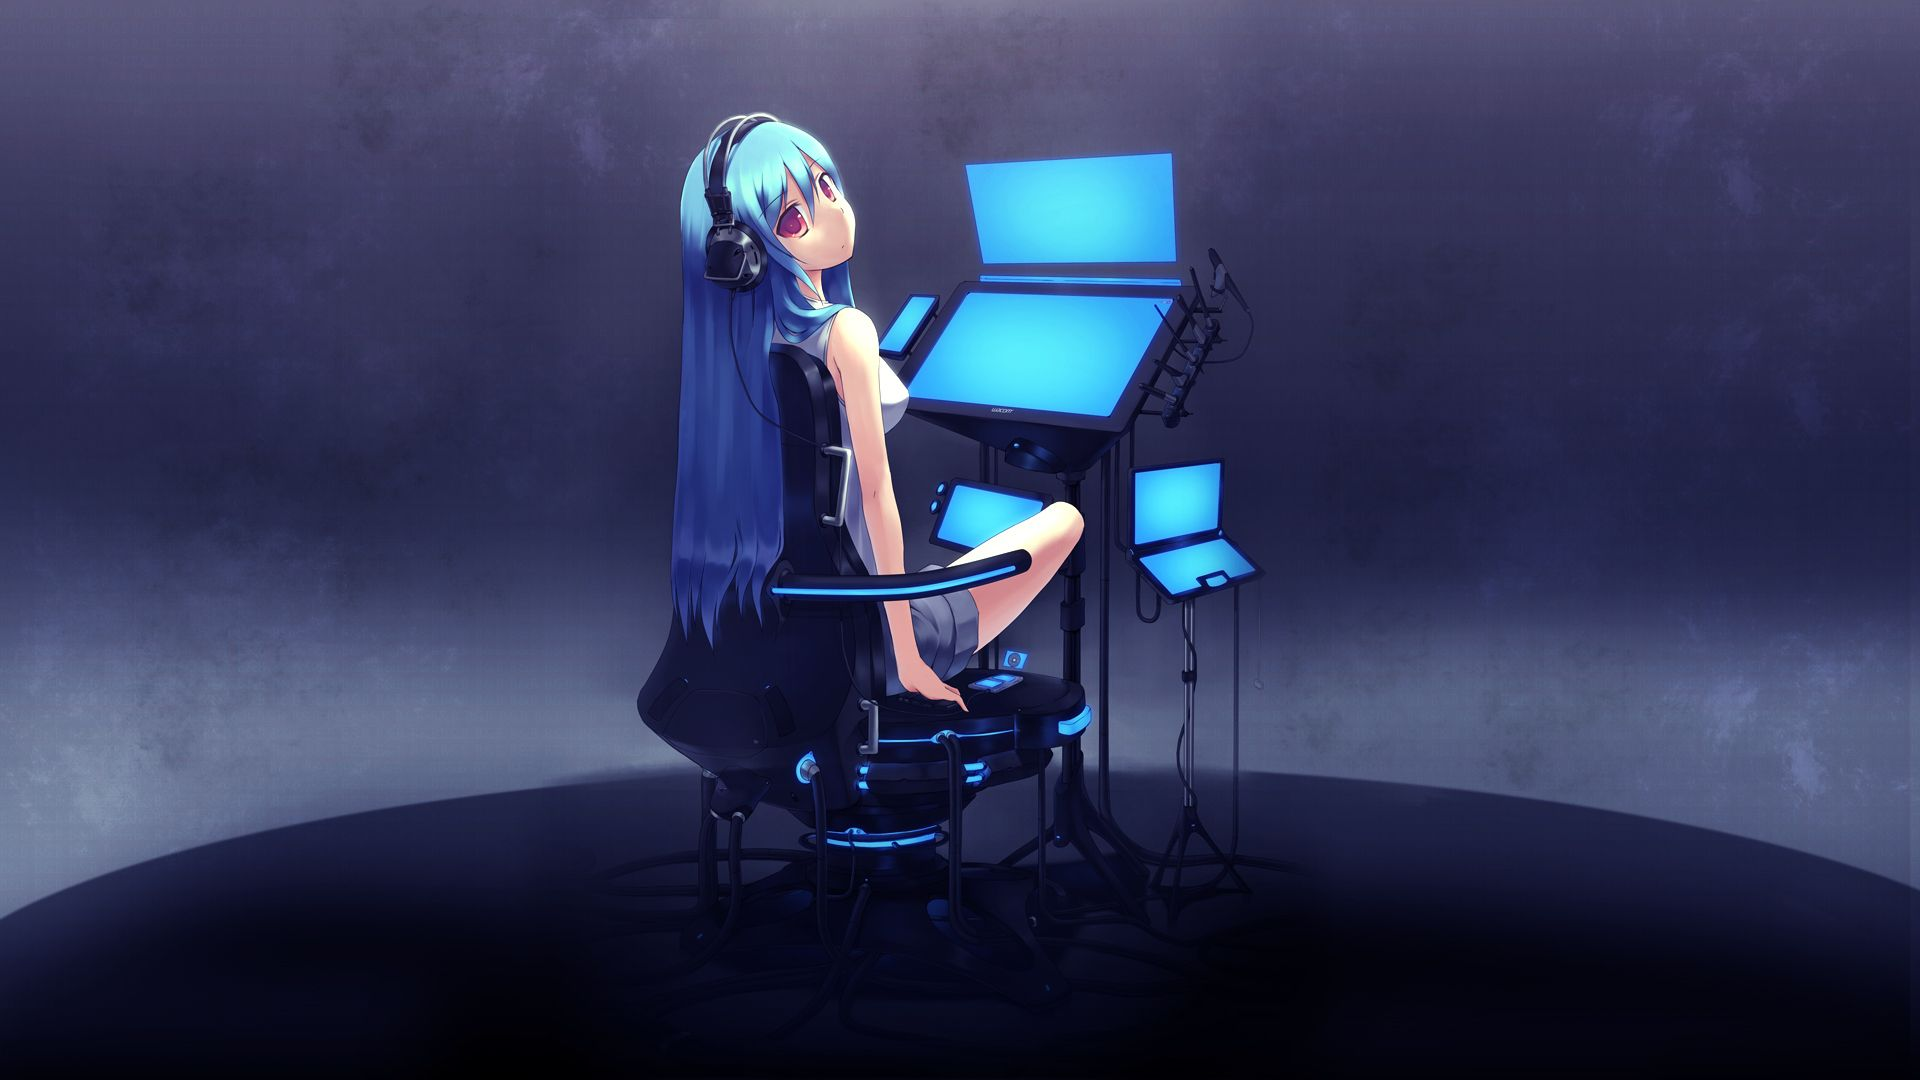 Anime Girl At The Computer With Headphones